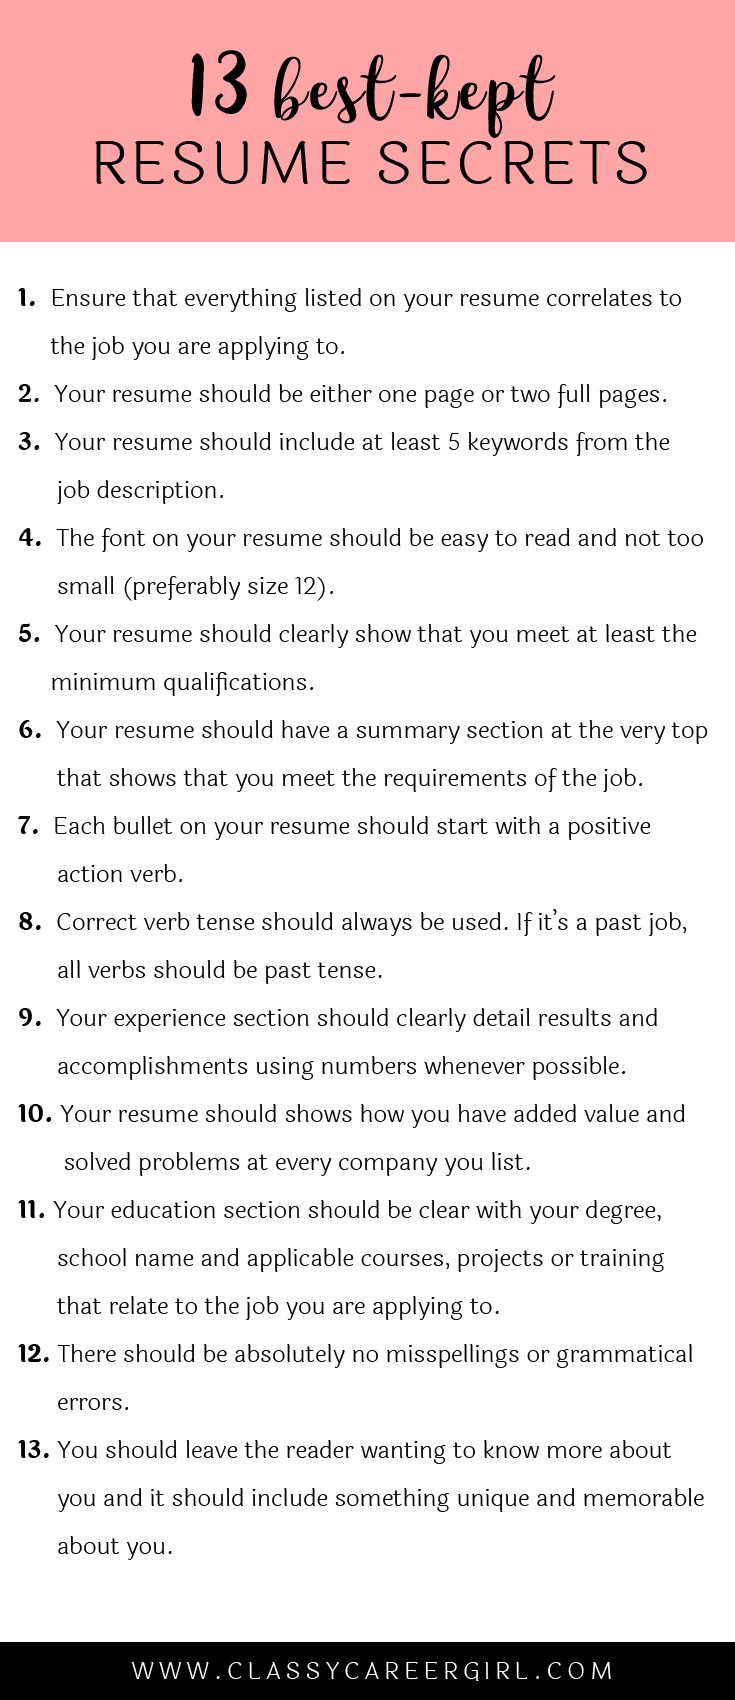 Opposenewapstandardsus  Pretty  Ideas About Resume On Pinterest  Cv Format Resume Cv And  With Exciting Some Hiring Managers Will Toss Your Resume Out If You Dont Know These  With Amazing Resume Key Words Also Teen Resume In Addition Best Objective For Resume And Free Online Resume As Well As How To Write A Professional Resume Additionally Fake Resume From Pinterestcom With Opposenewapstandardsus  Exciting  Ideas About Resume On Pinterest  Cv Format Resume Cv And  With Amazing Some Hiring Managers Will Toss Your Resume Out If You Dont Know These  And Pretty Resume Key Words Also Teen Resume In Addition Best Objective For Resume From Pinterestcom